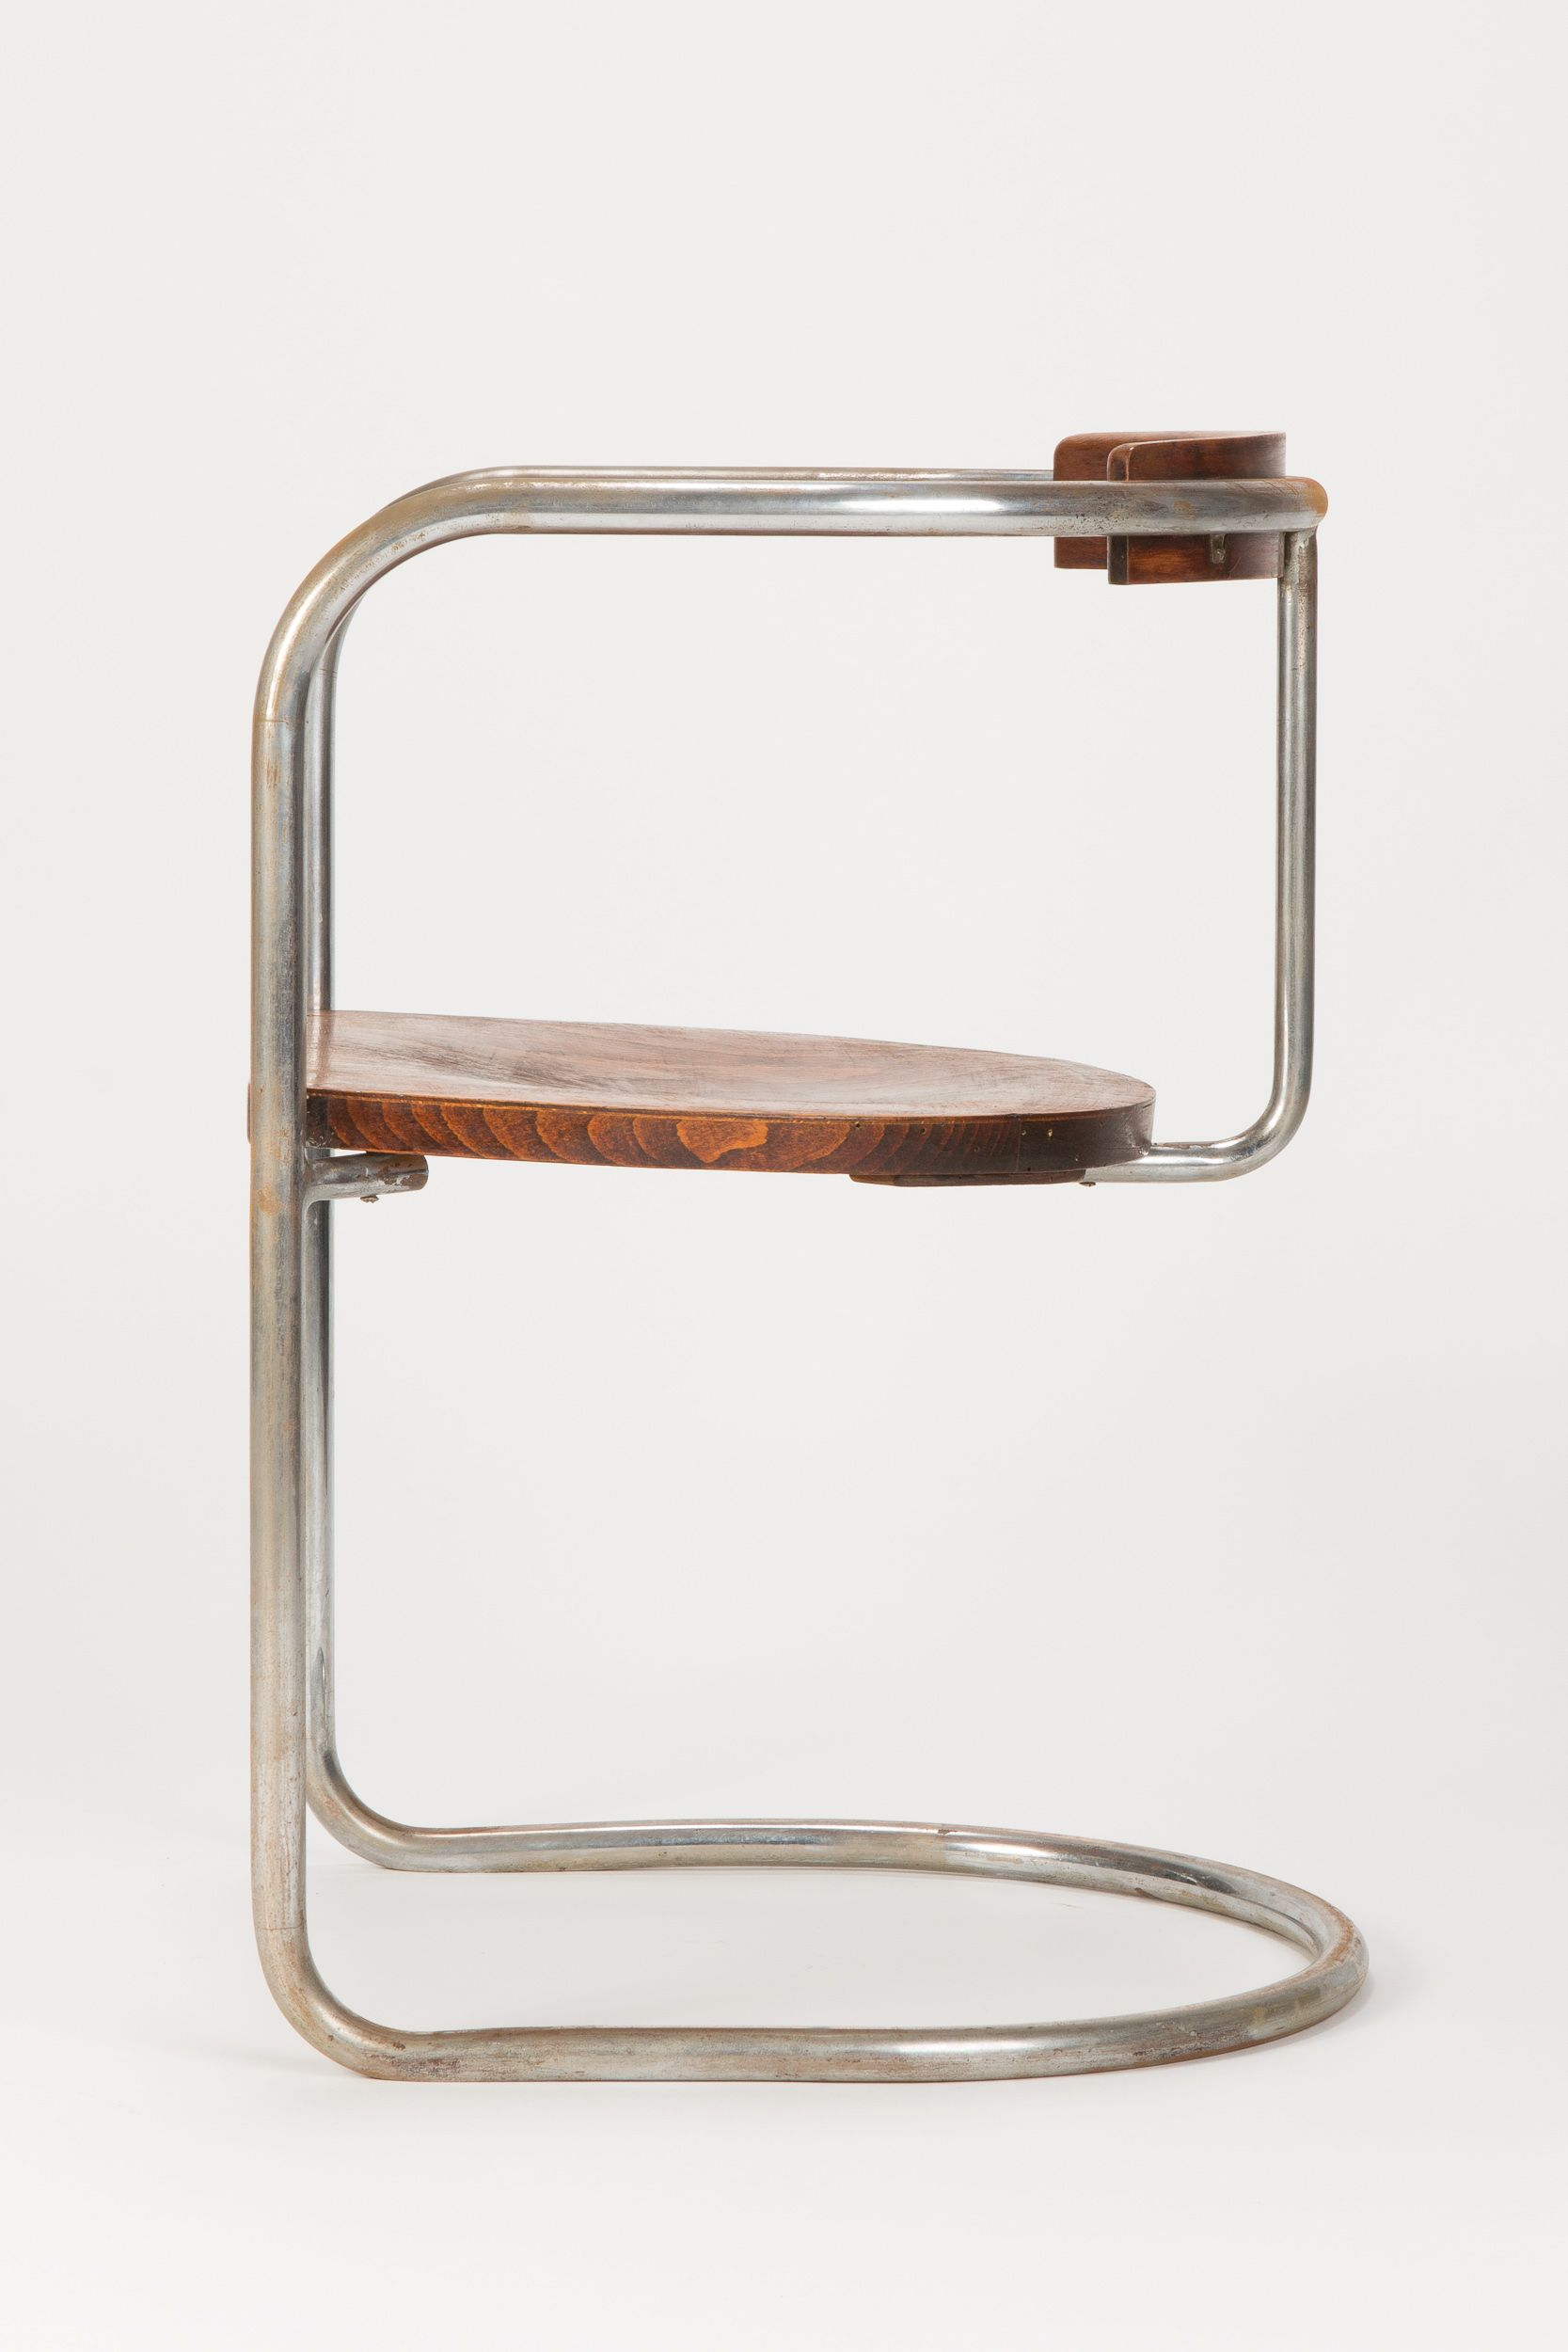 Bauhaus Steel Tube Cantilever Chair 30s Seatings